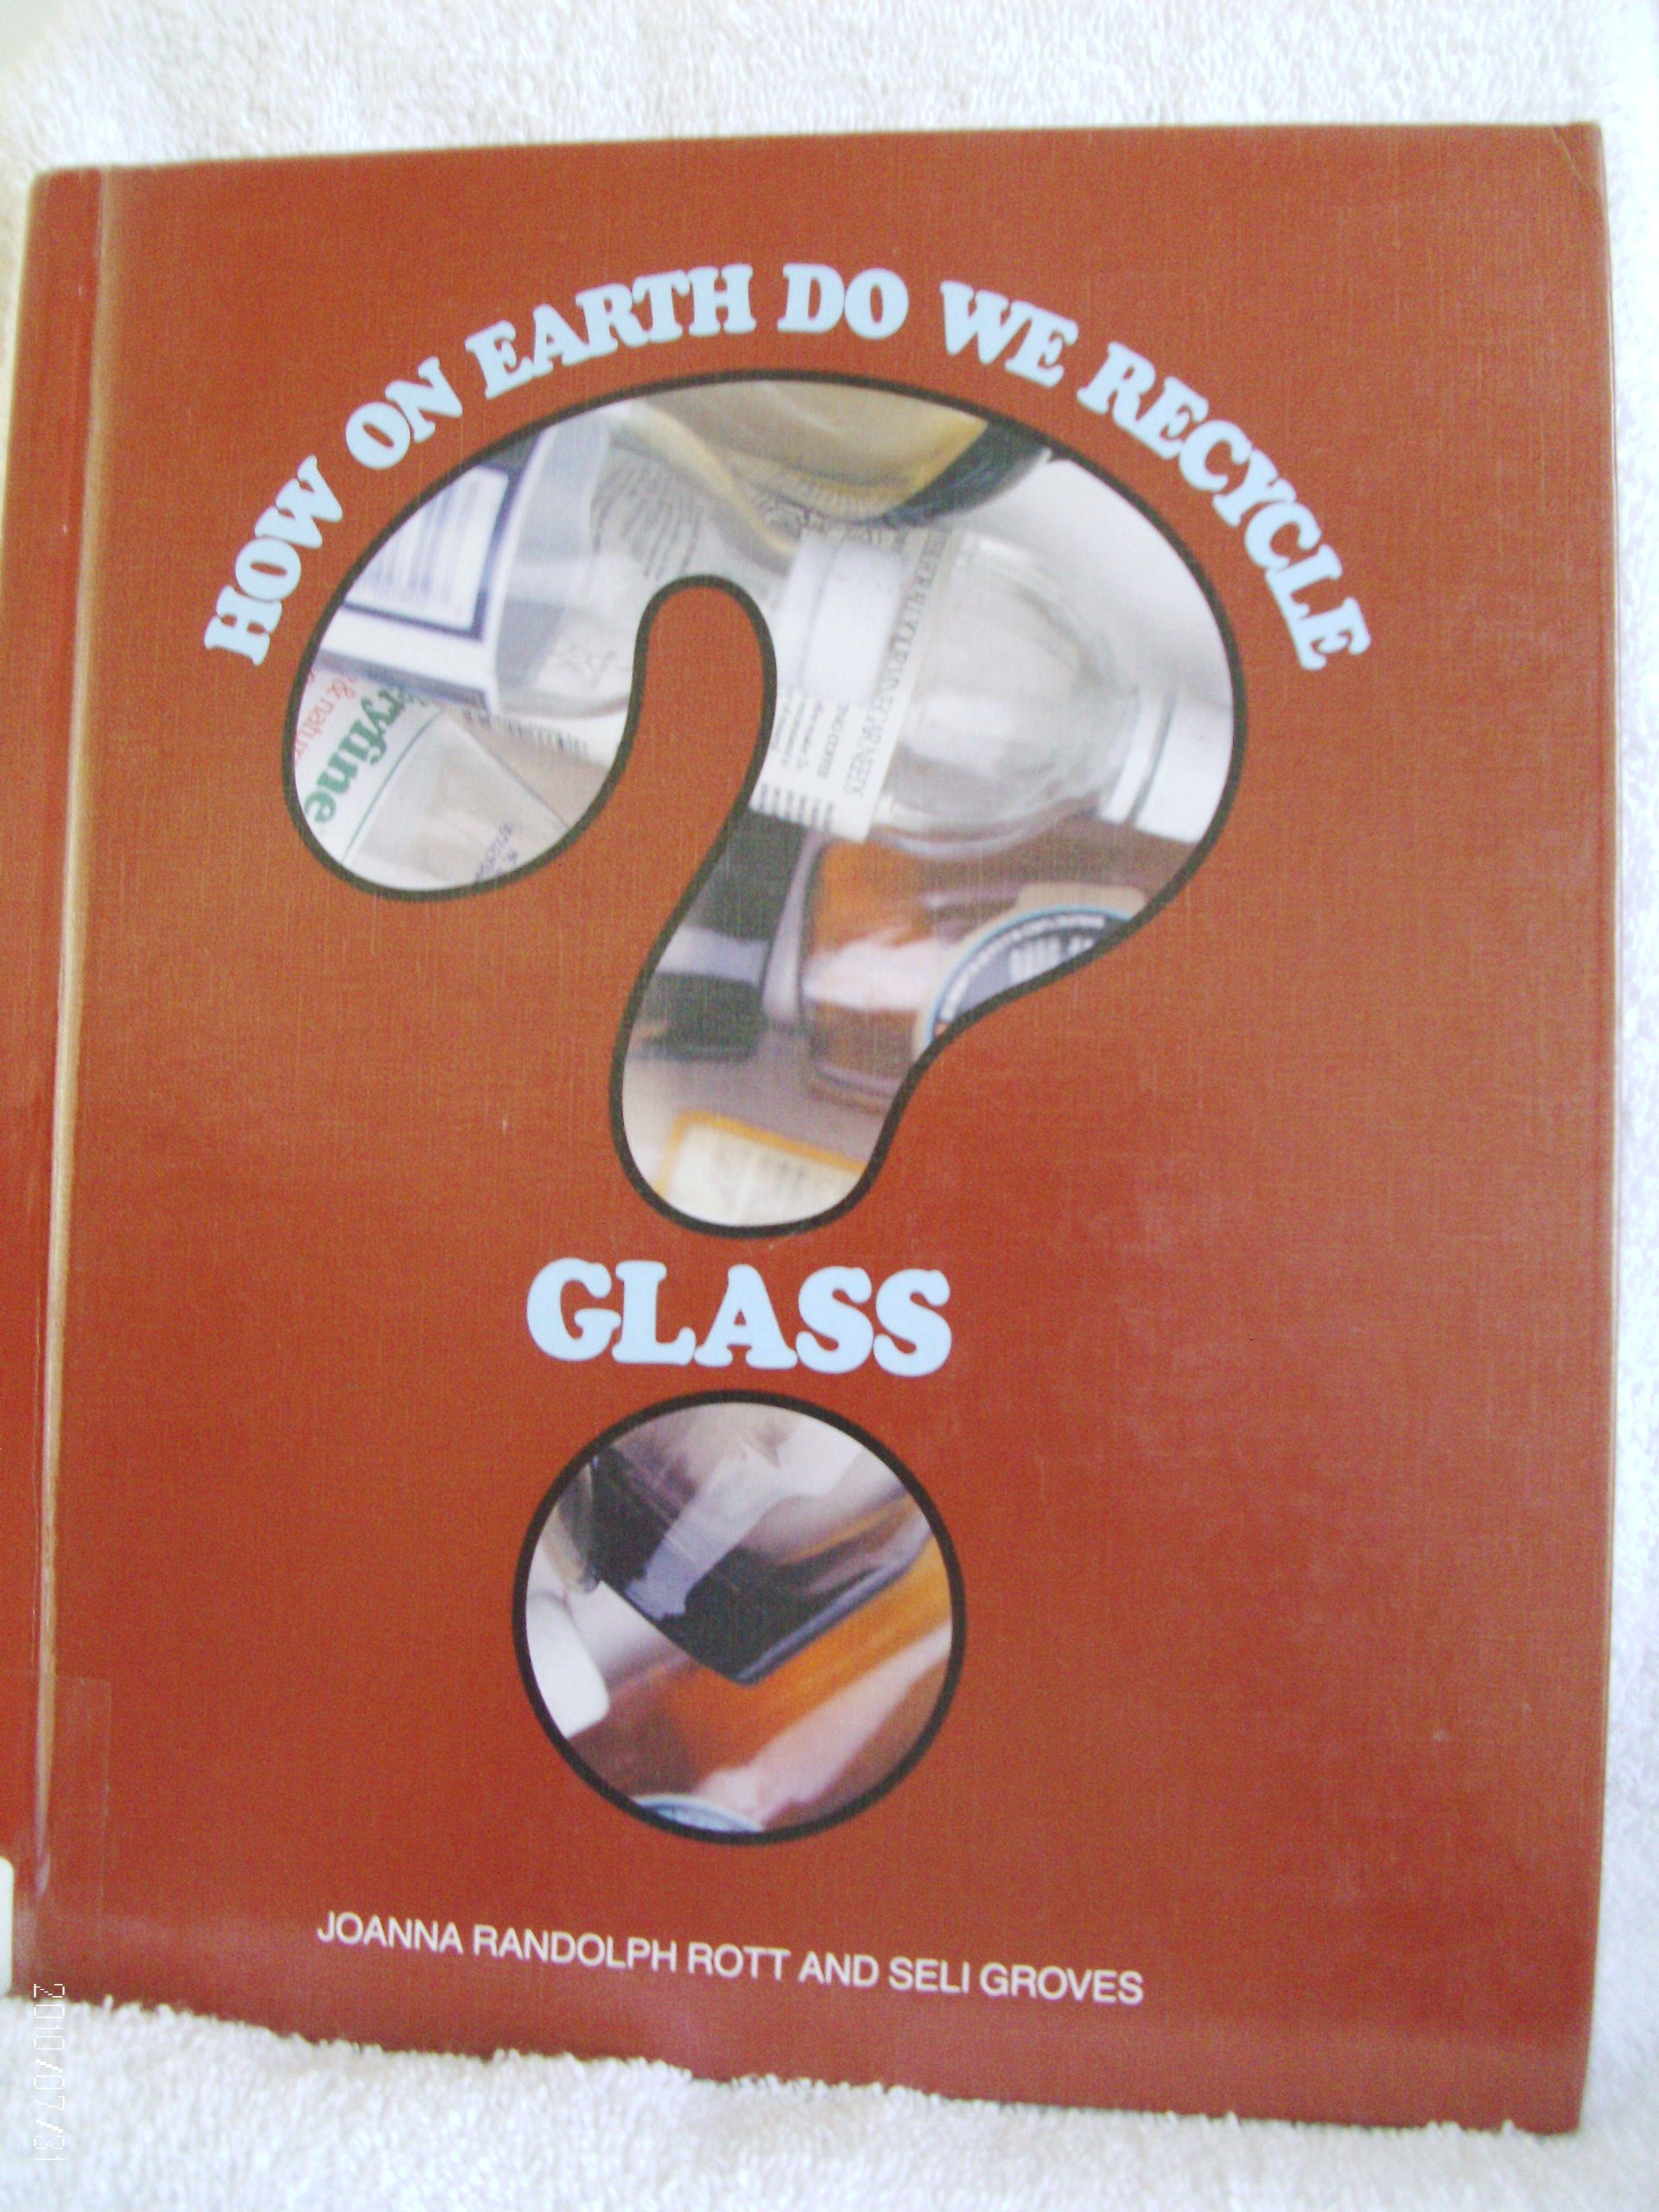 How On Earth Do We Recycle Glass?